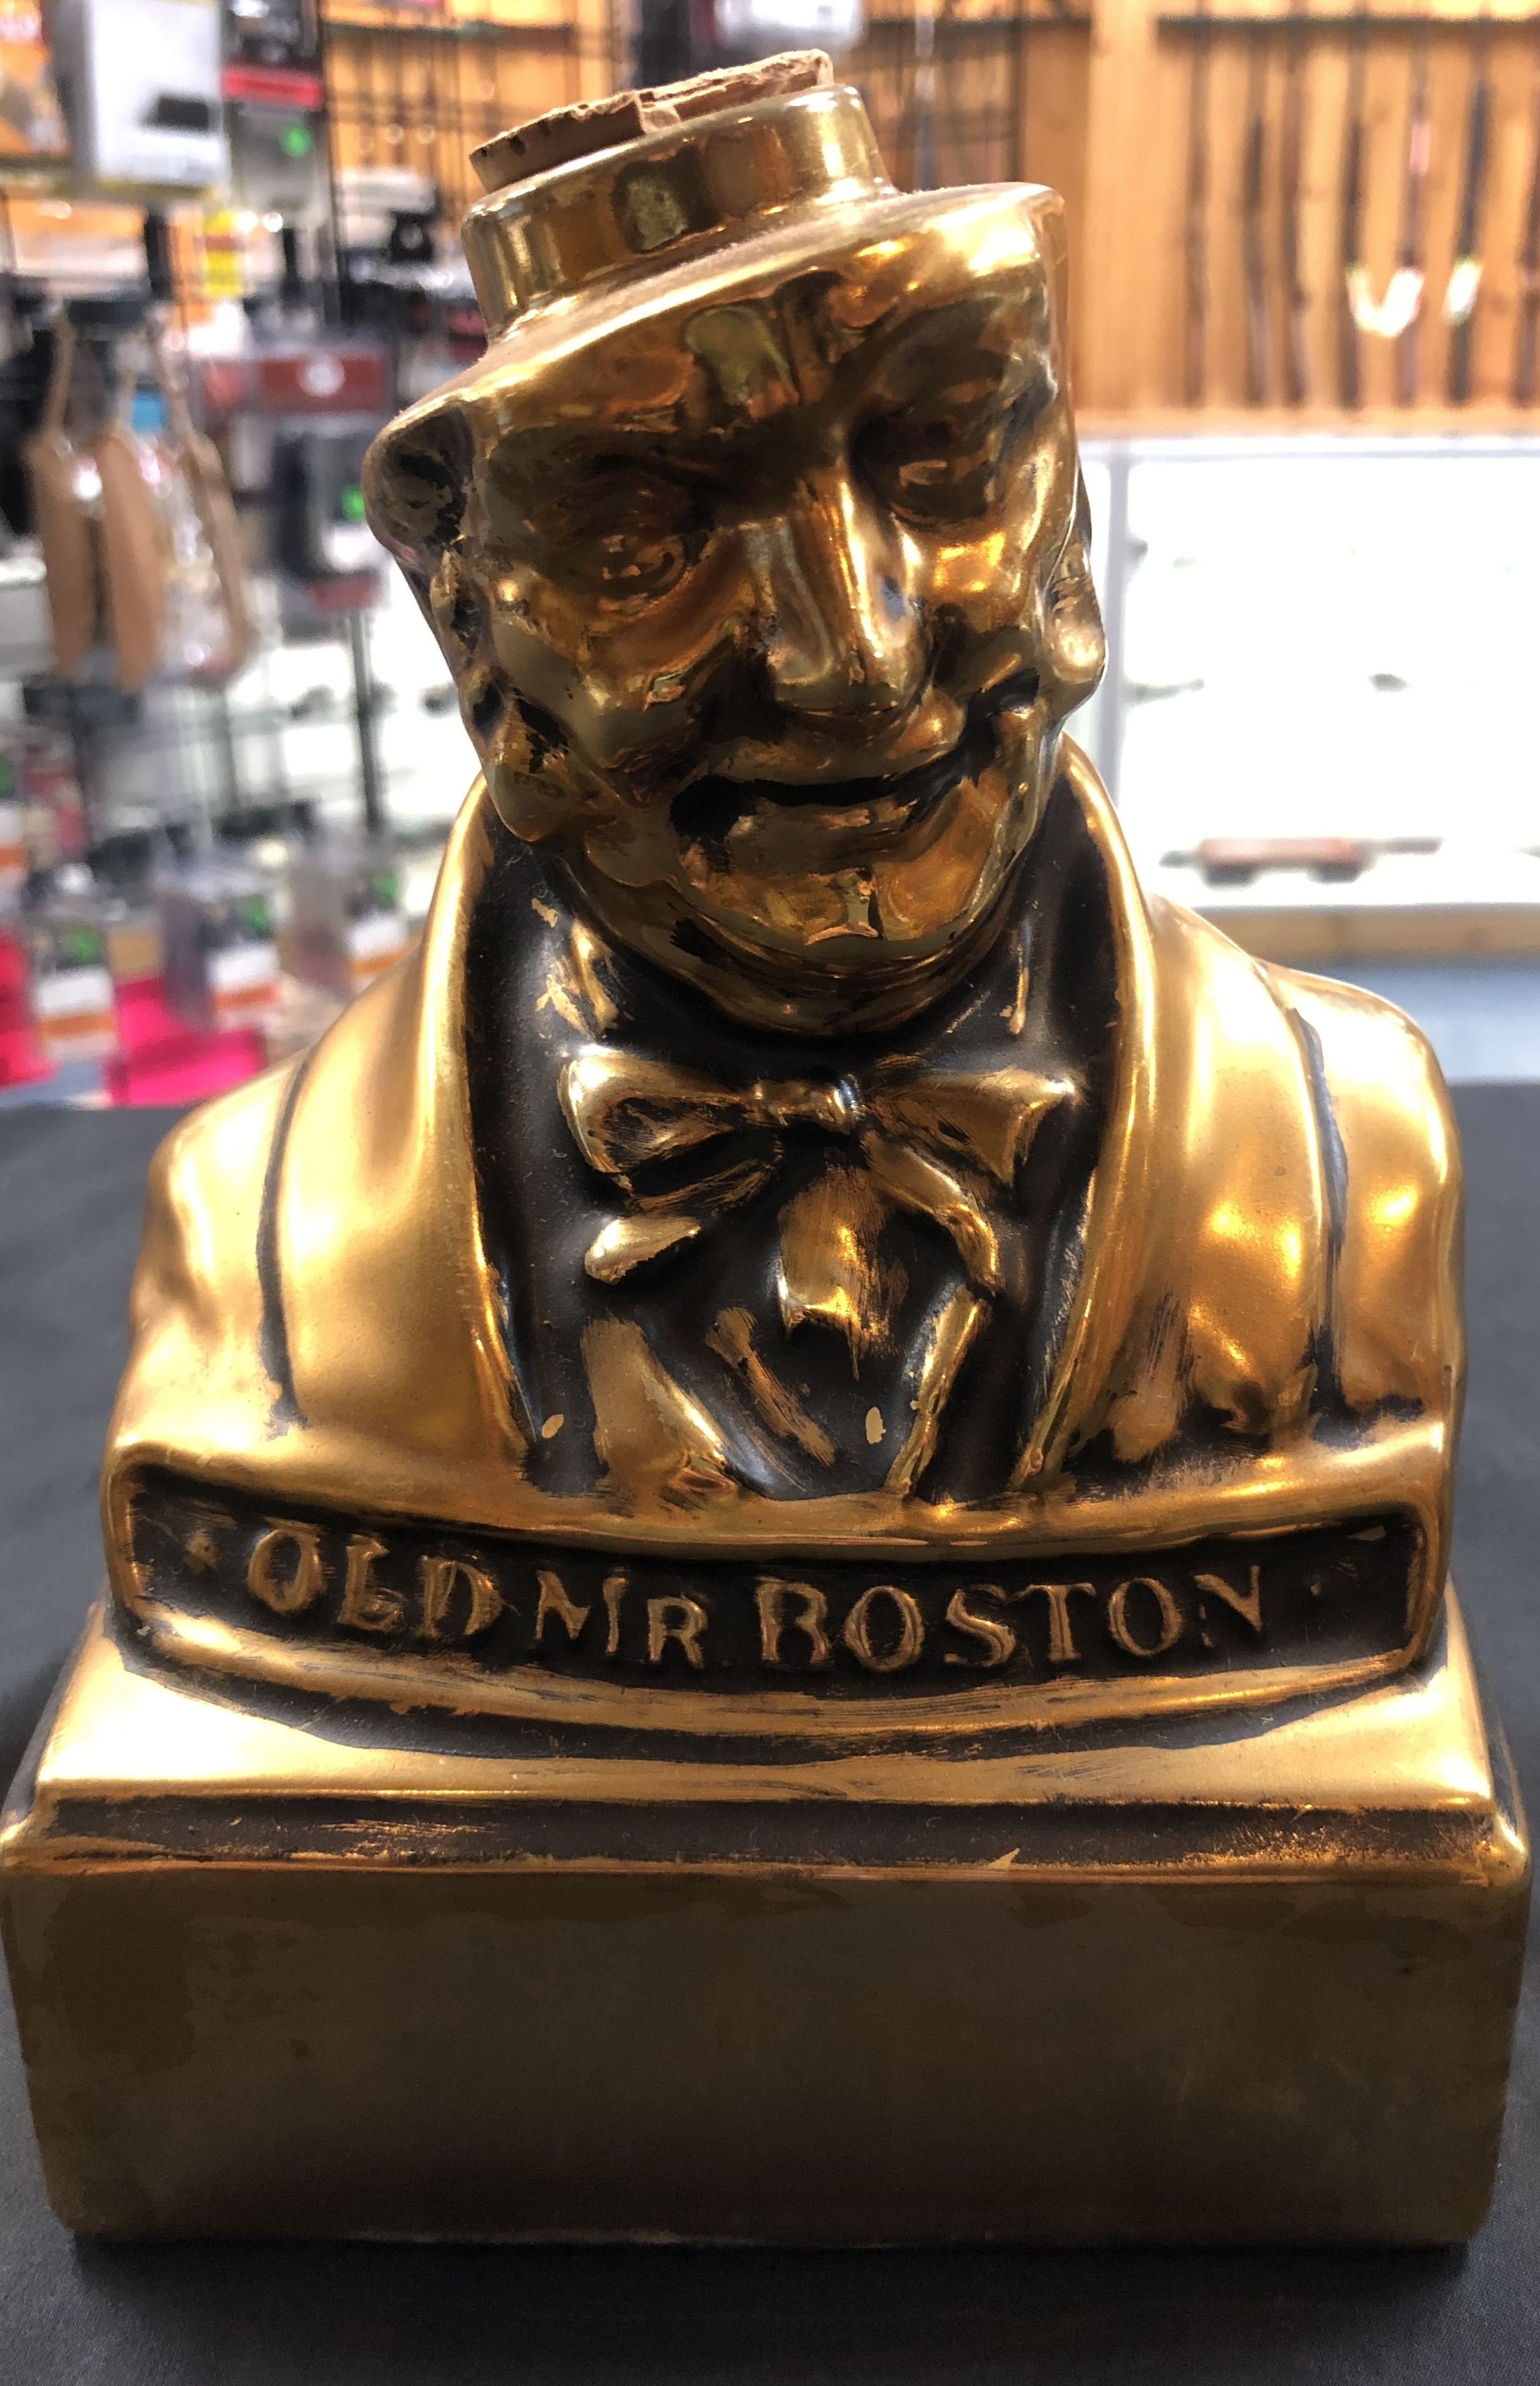 COLLECTIBLES: OLD MR. BOSTON LIQUOR BOTTLE NO 5 1970 ROYAL HALBURTON